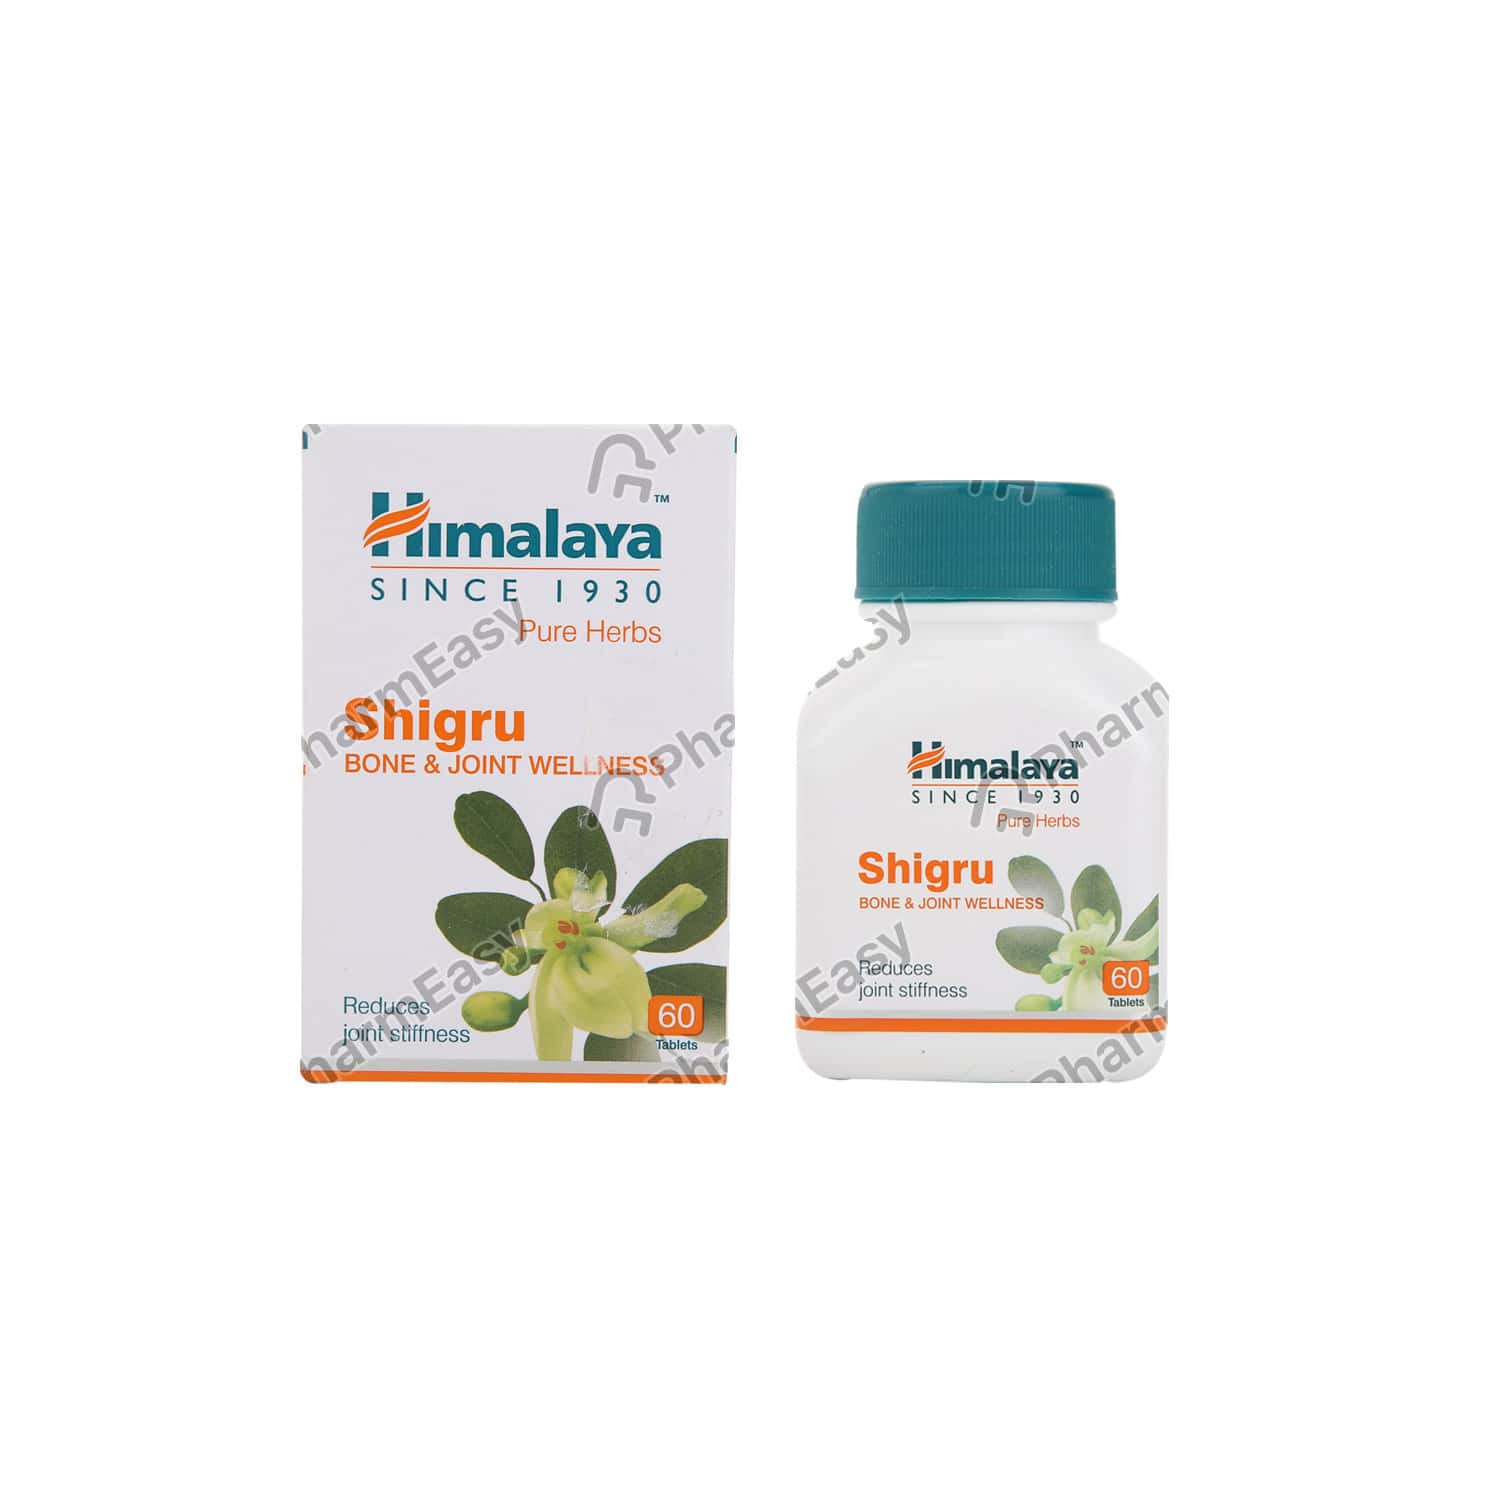 Himalaya Wellness Pure Herbs Shigru (60 Tabs) - Bone & Joint Wellness